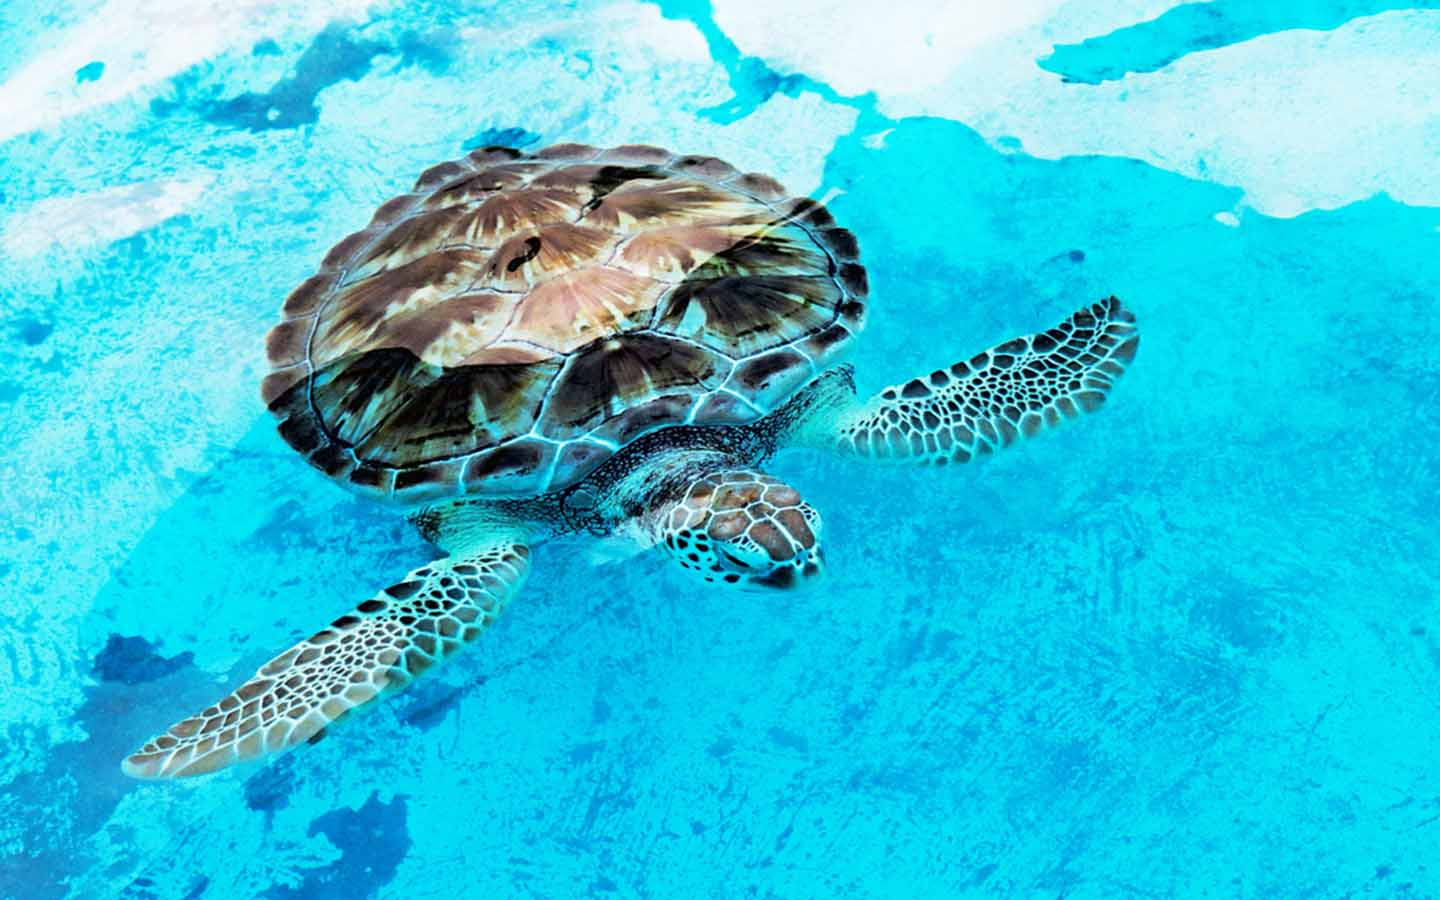 Hawksbill turtle rehabilitation